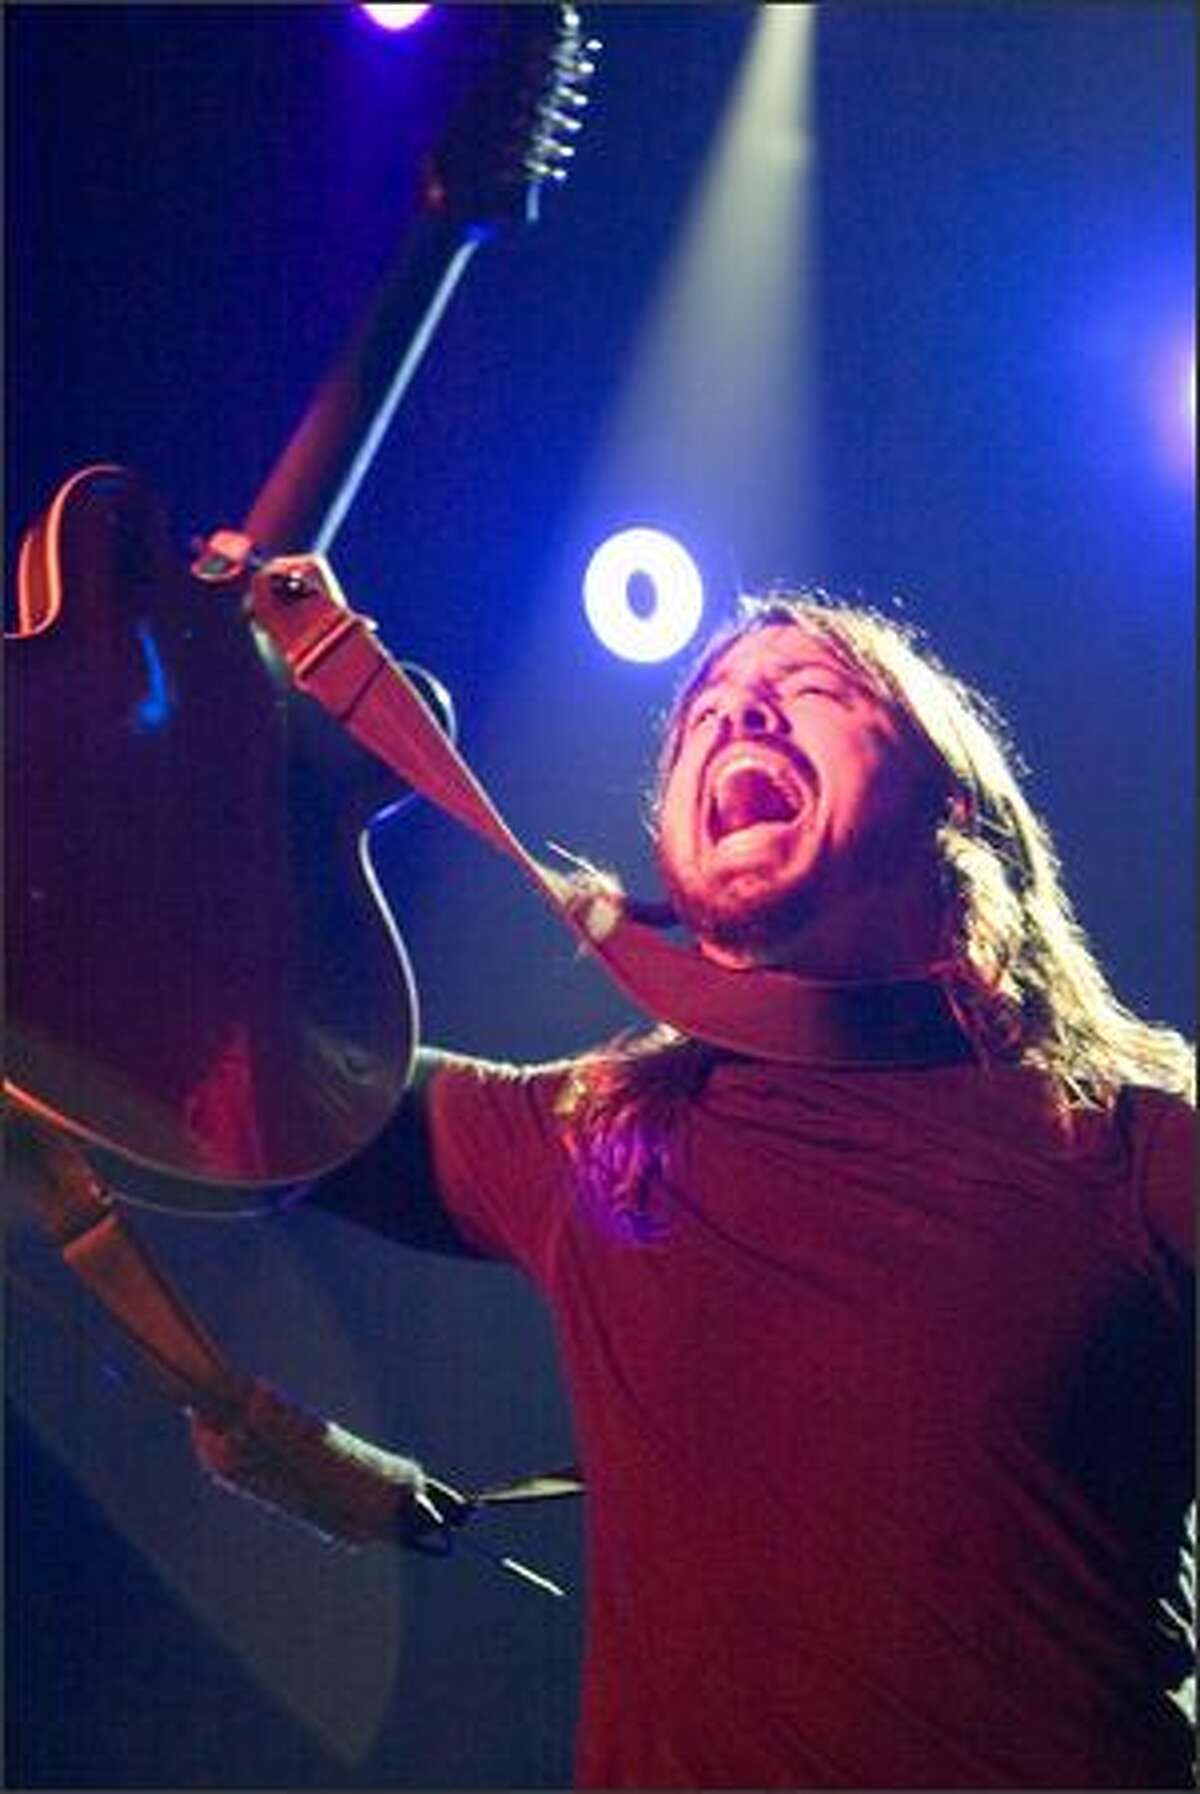 Dave Grohl, lead singer, performs.